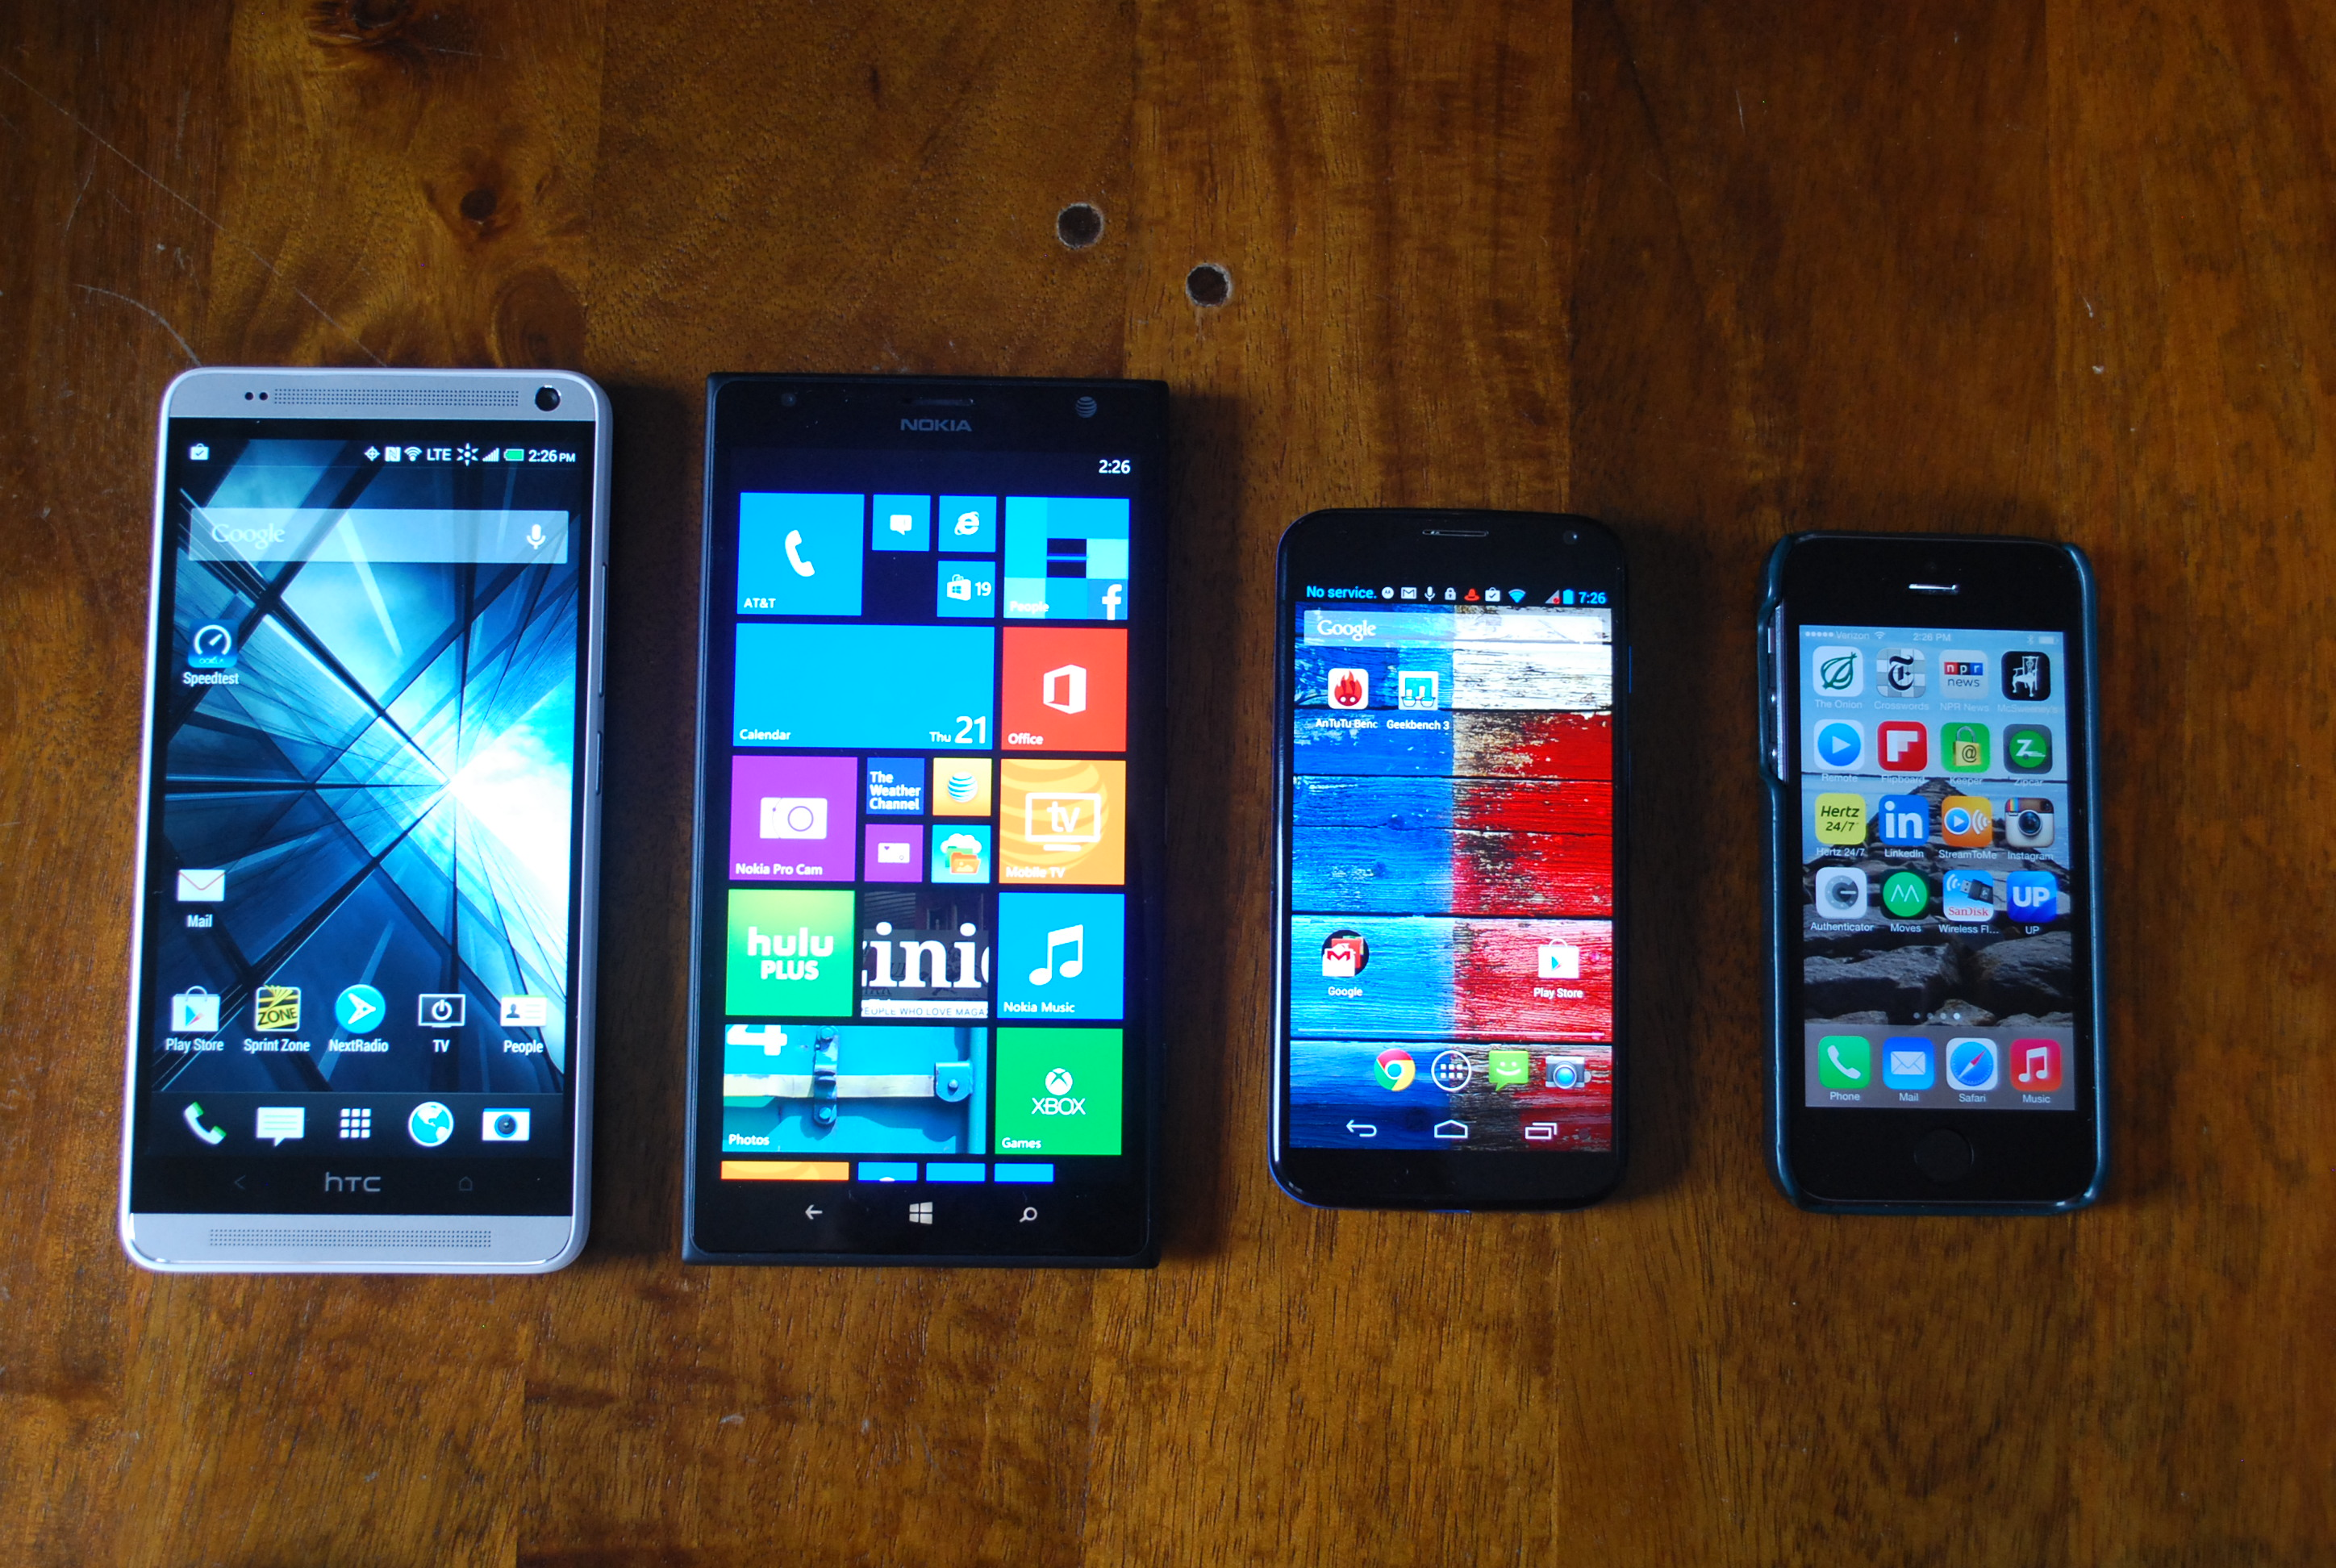 HTC One Max size comparison